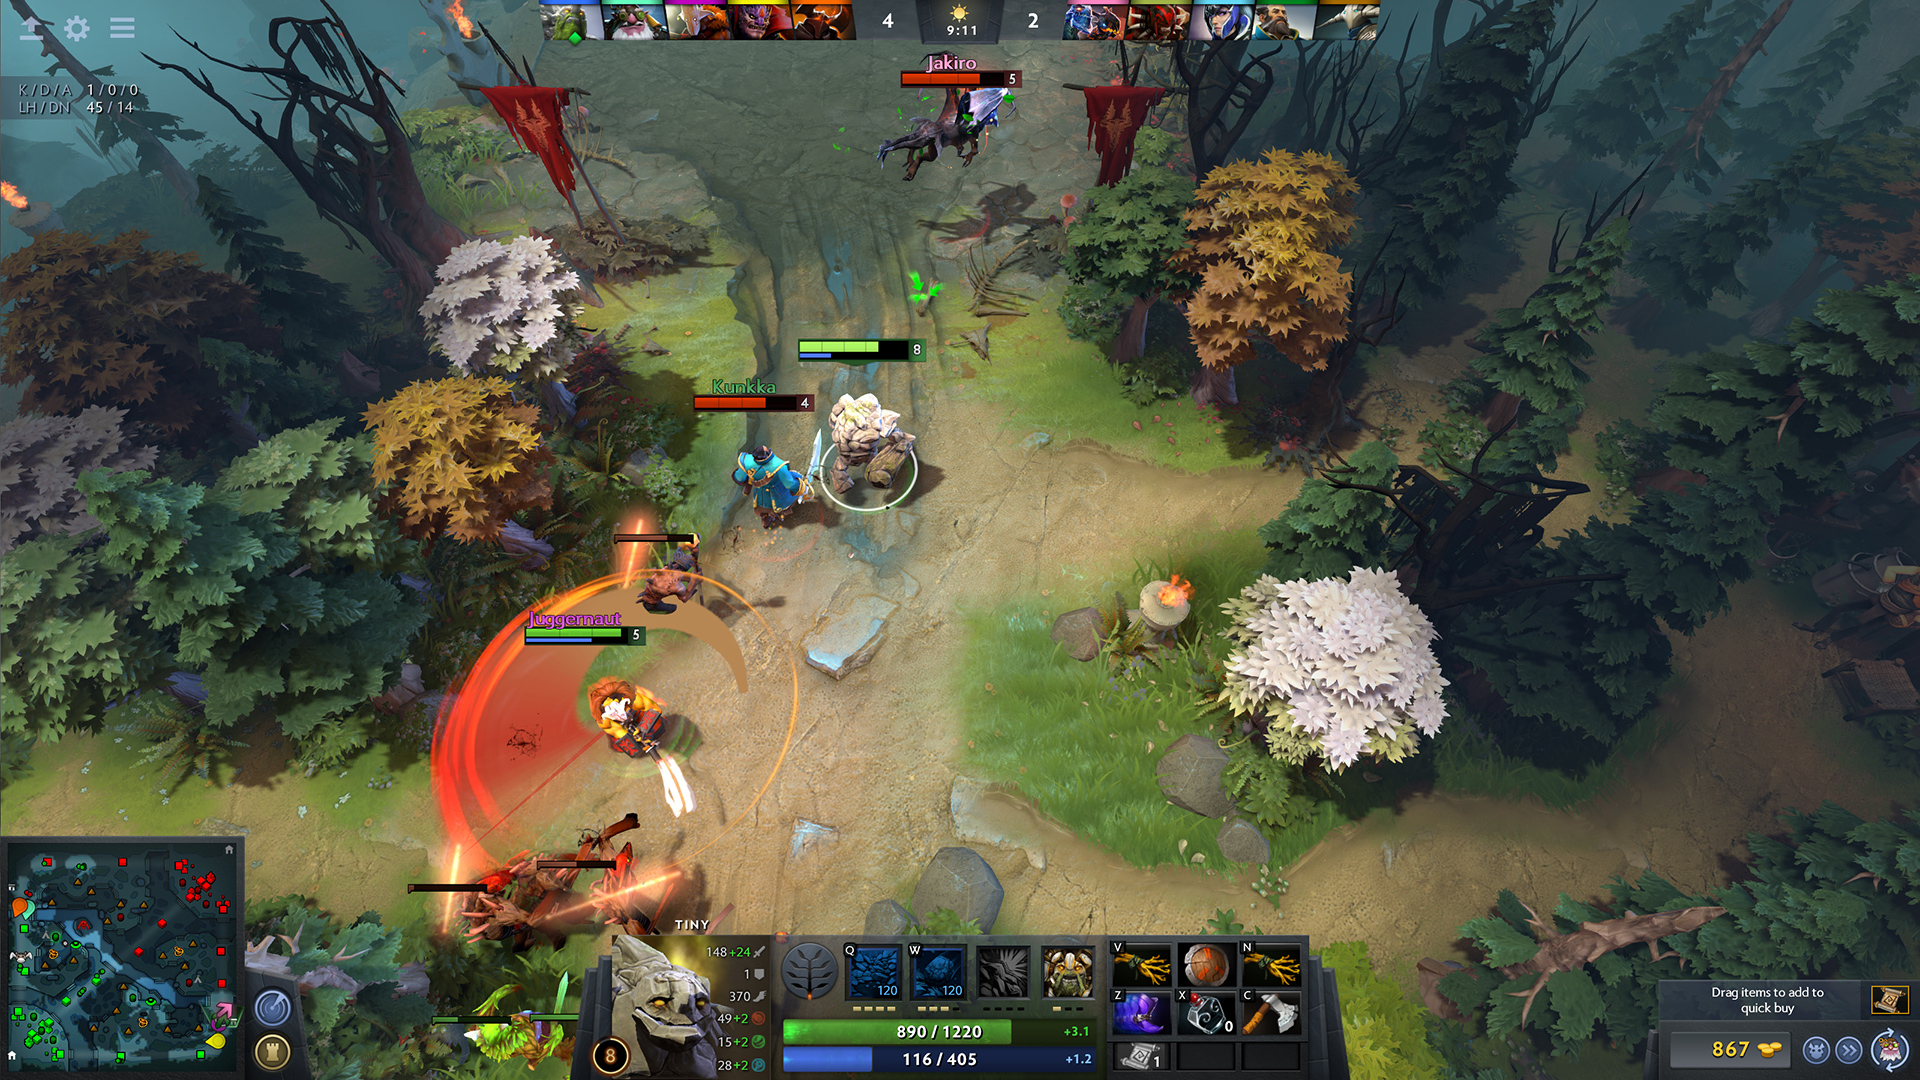 Valve release a new matchmaking system for Dota 2 - ZBT